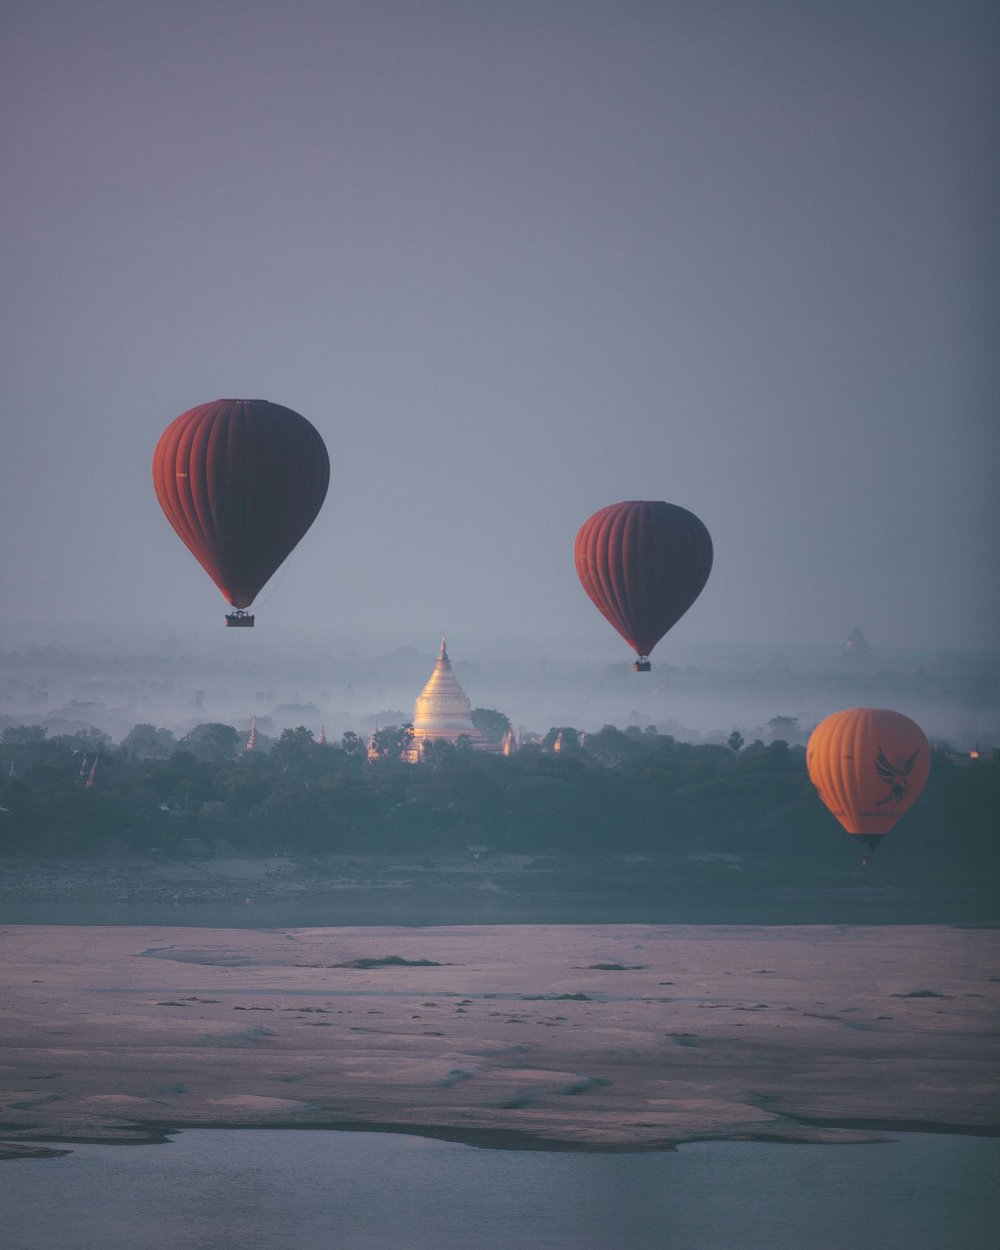 Balloon over pagoda in Bagan